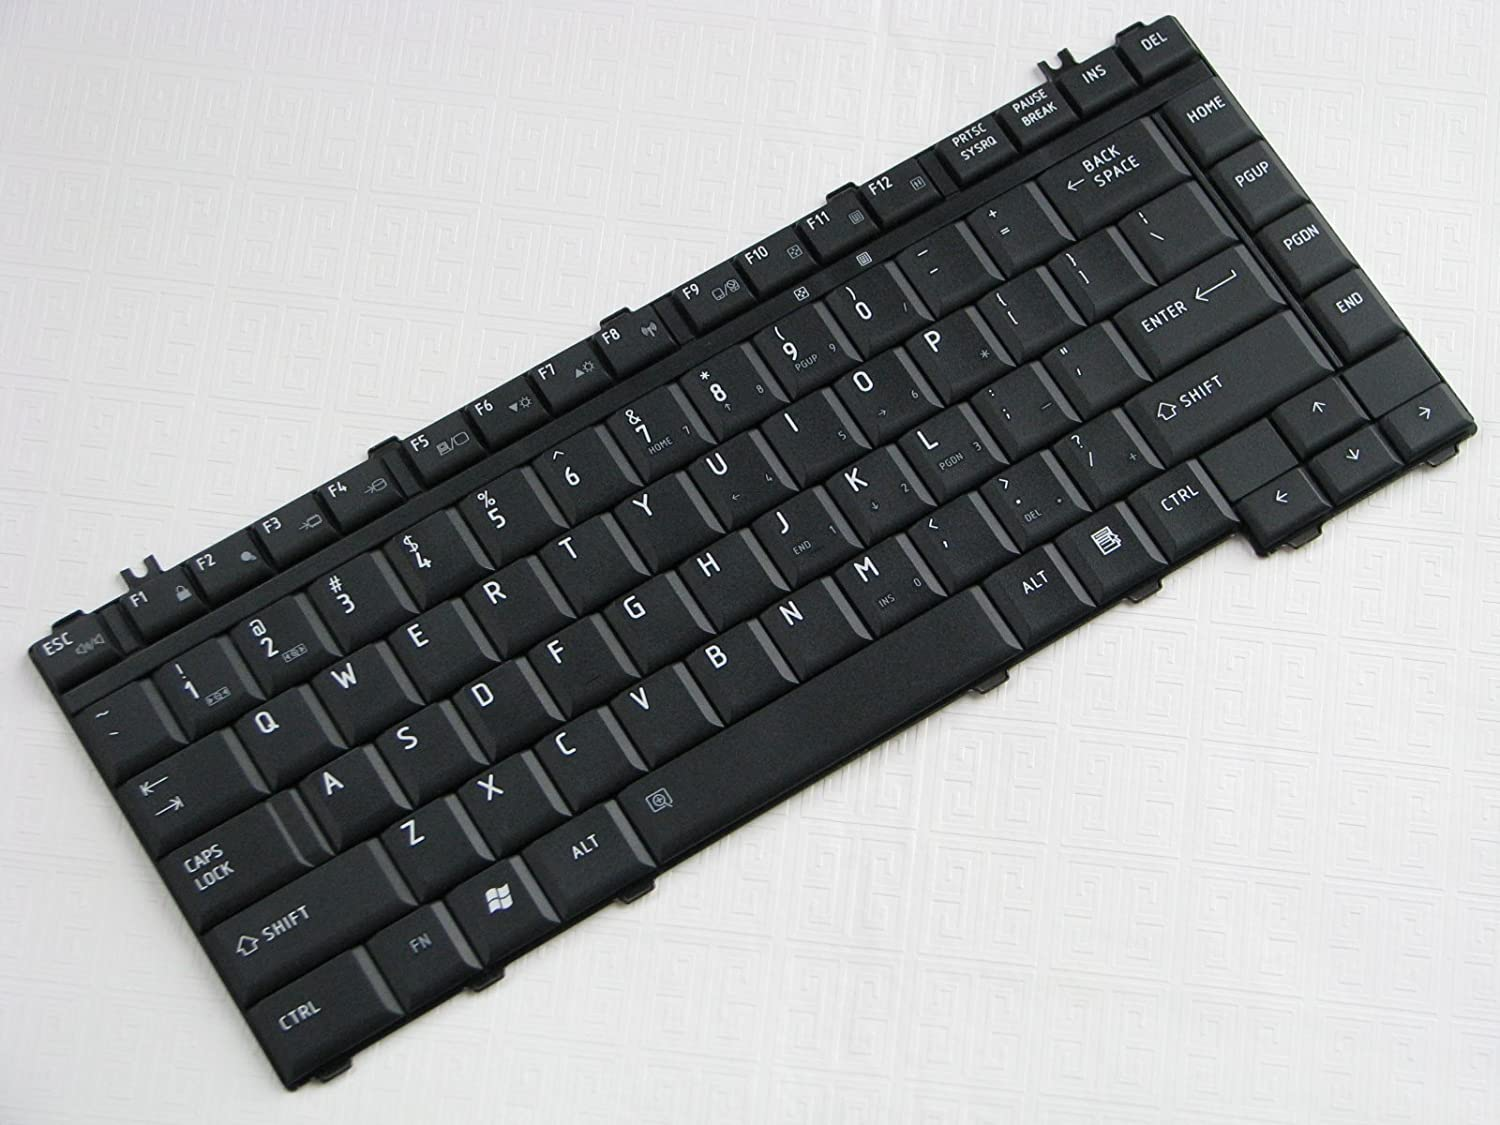 Amazon.com: Brand New Replacement Keyboard ( Black ) for Toshiba